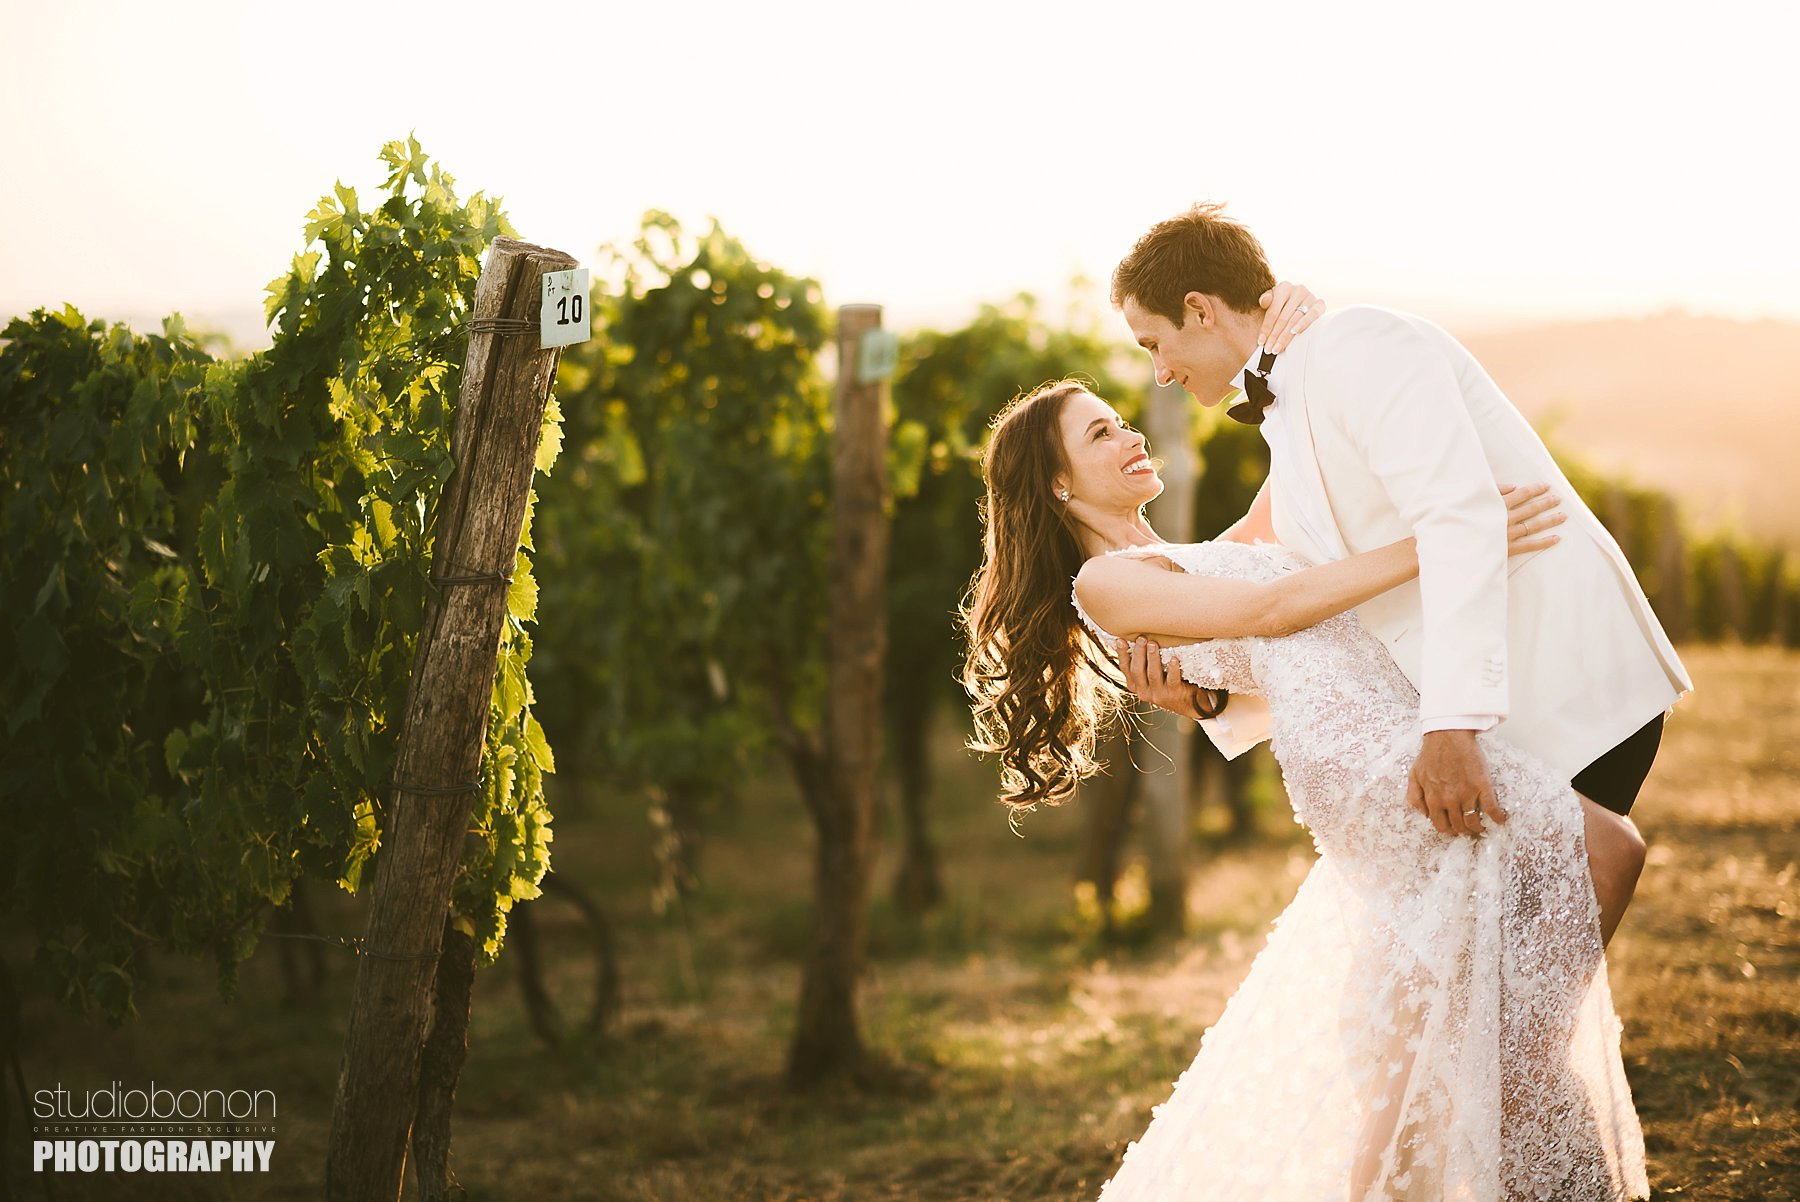 Unforgettable bride and groom portrait in a Tuscan vineyard near Panzano